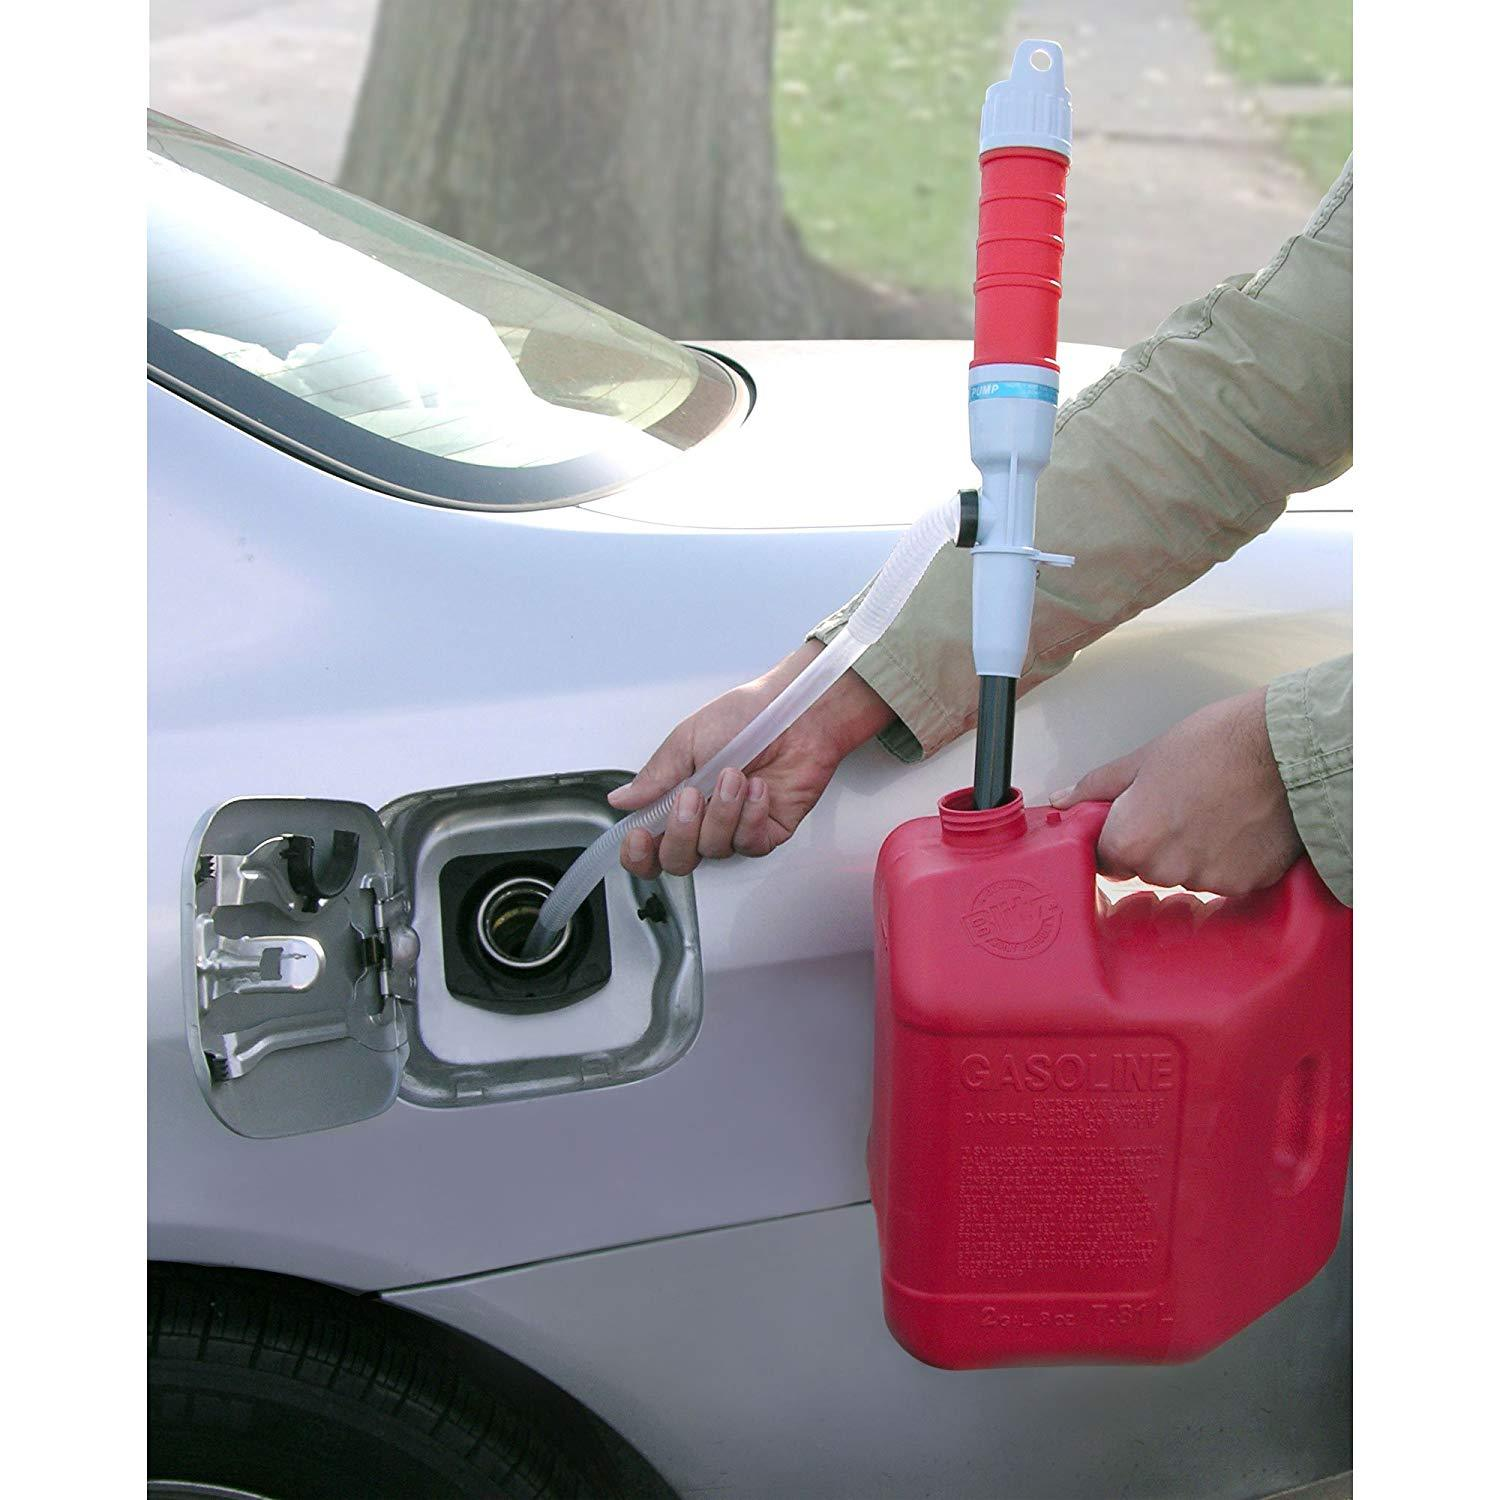 Buy Two 60% OFF + Free Shipping-Battery-Operated Liquid Transfer Pump